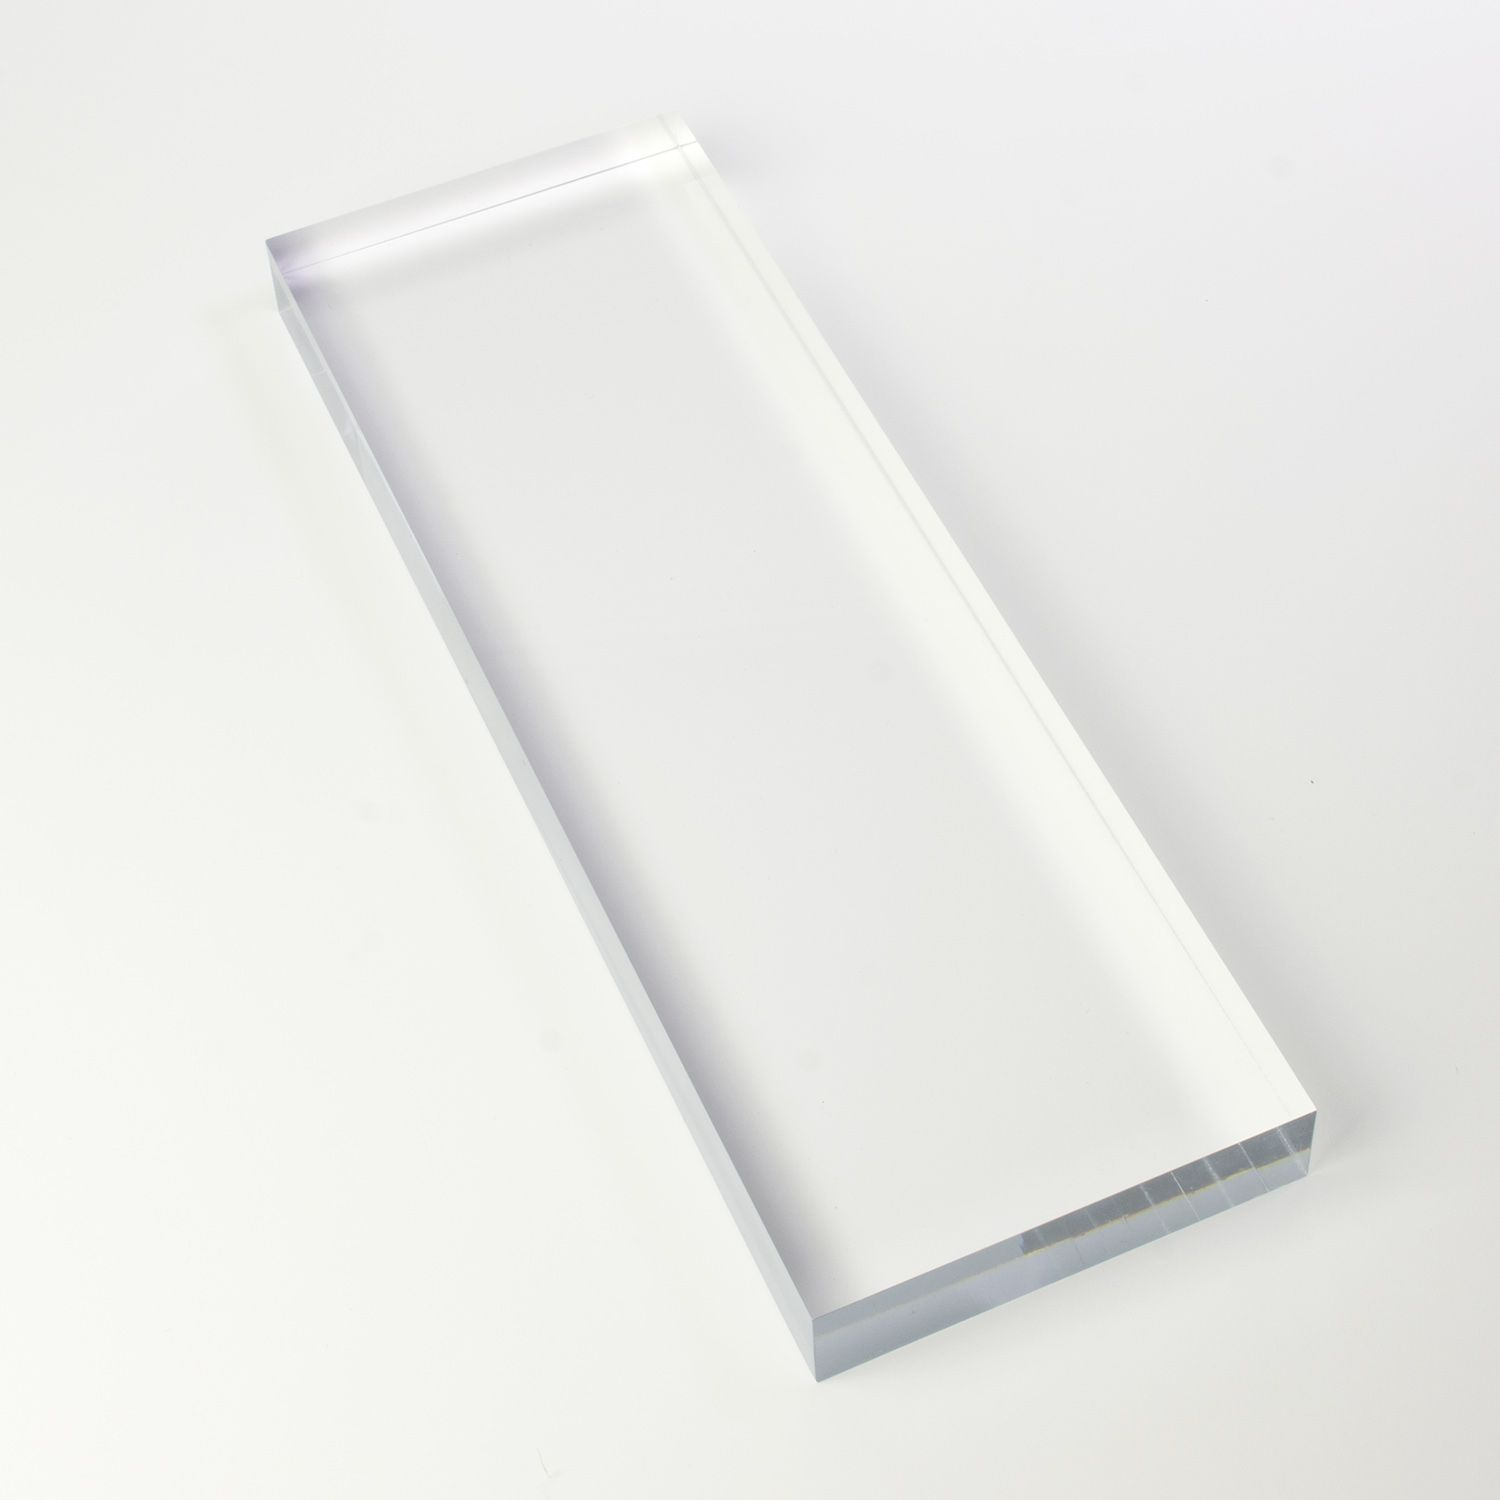 Solid Clear Acrylic Block 4 X 12 X 1 25 Thick Clear Acrylic Acrylic Acrylic Display